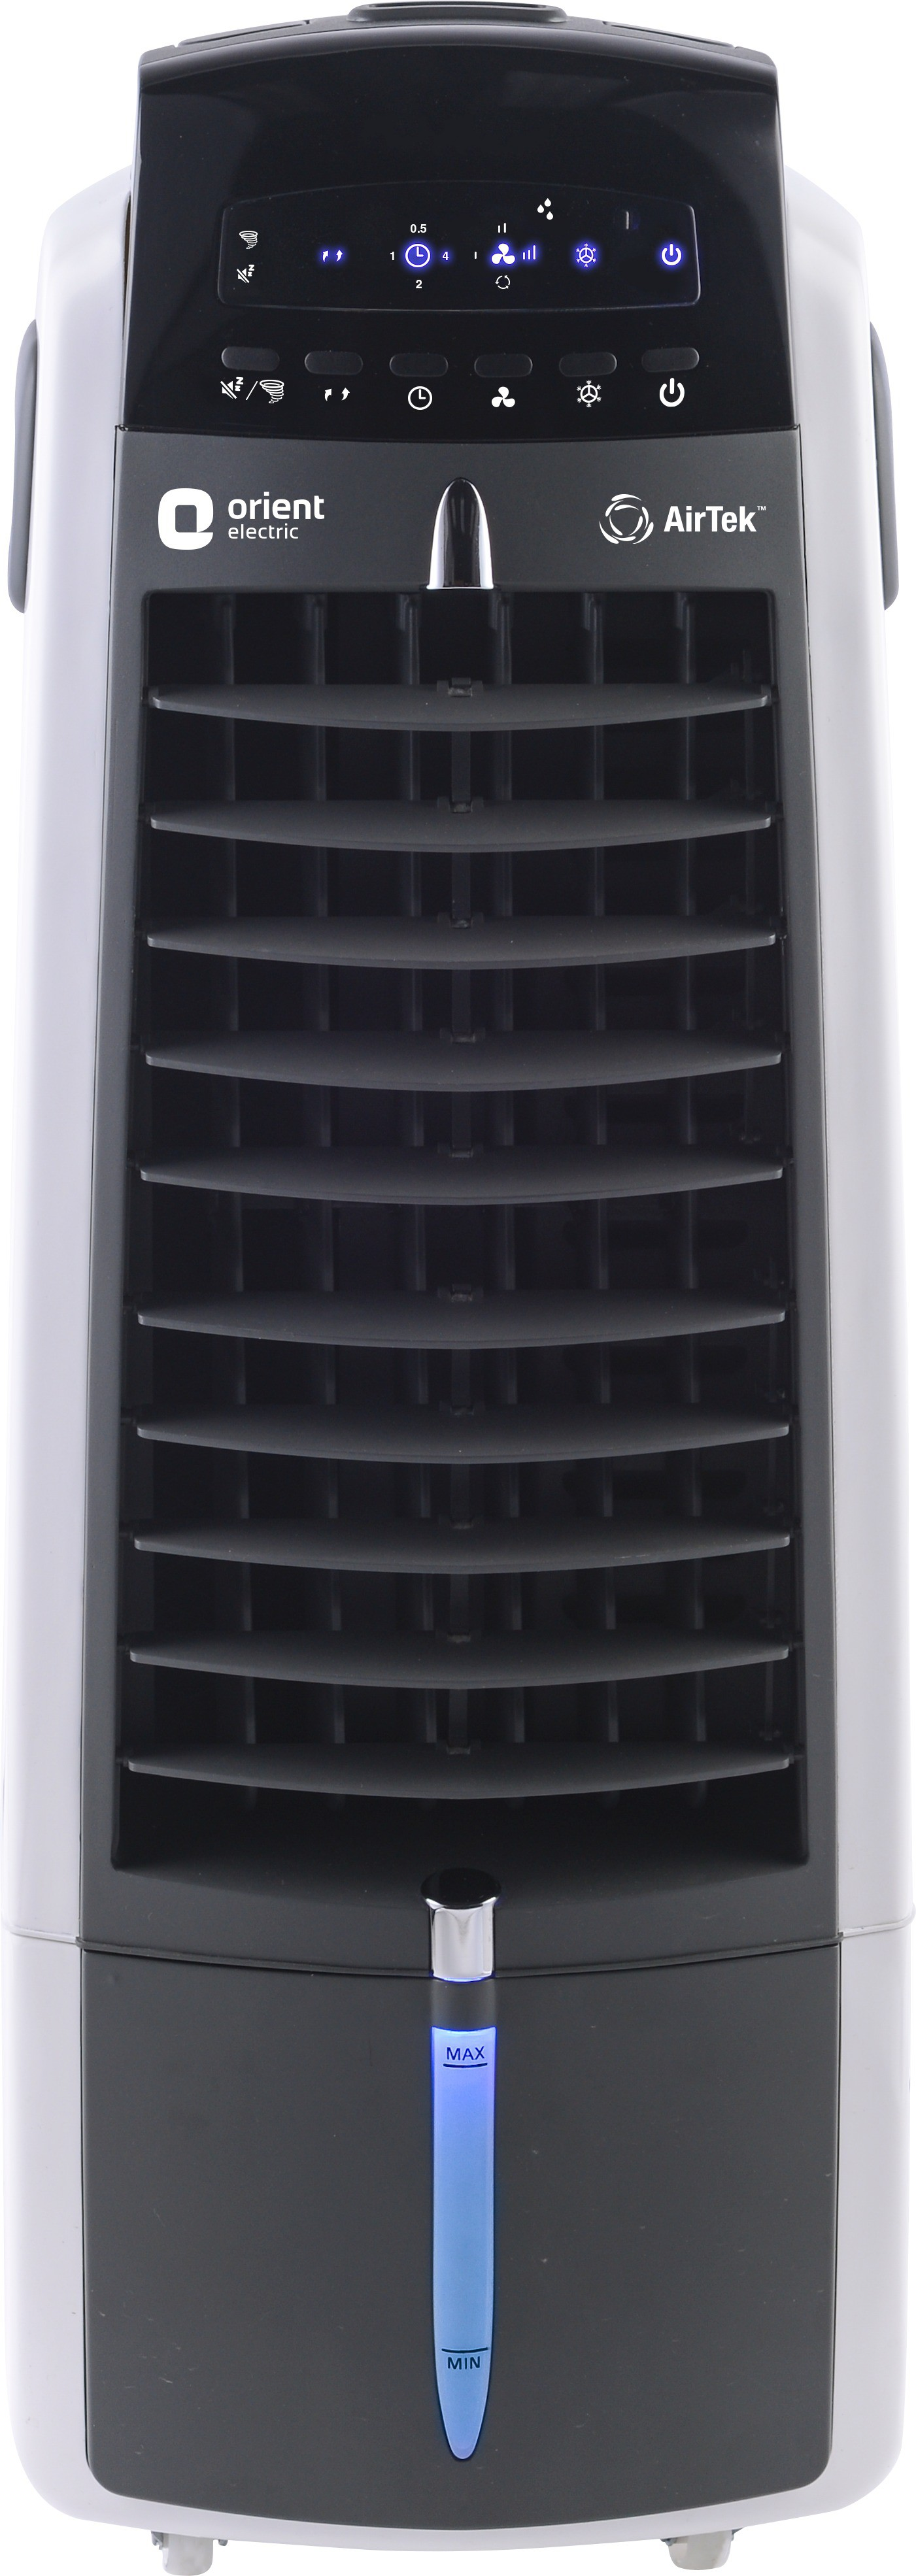 View Orient Electric Airtek Personal Air Cooler(White, Grey, 7 Litres)  Price Online